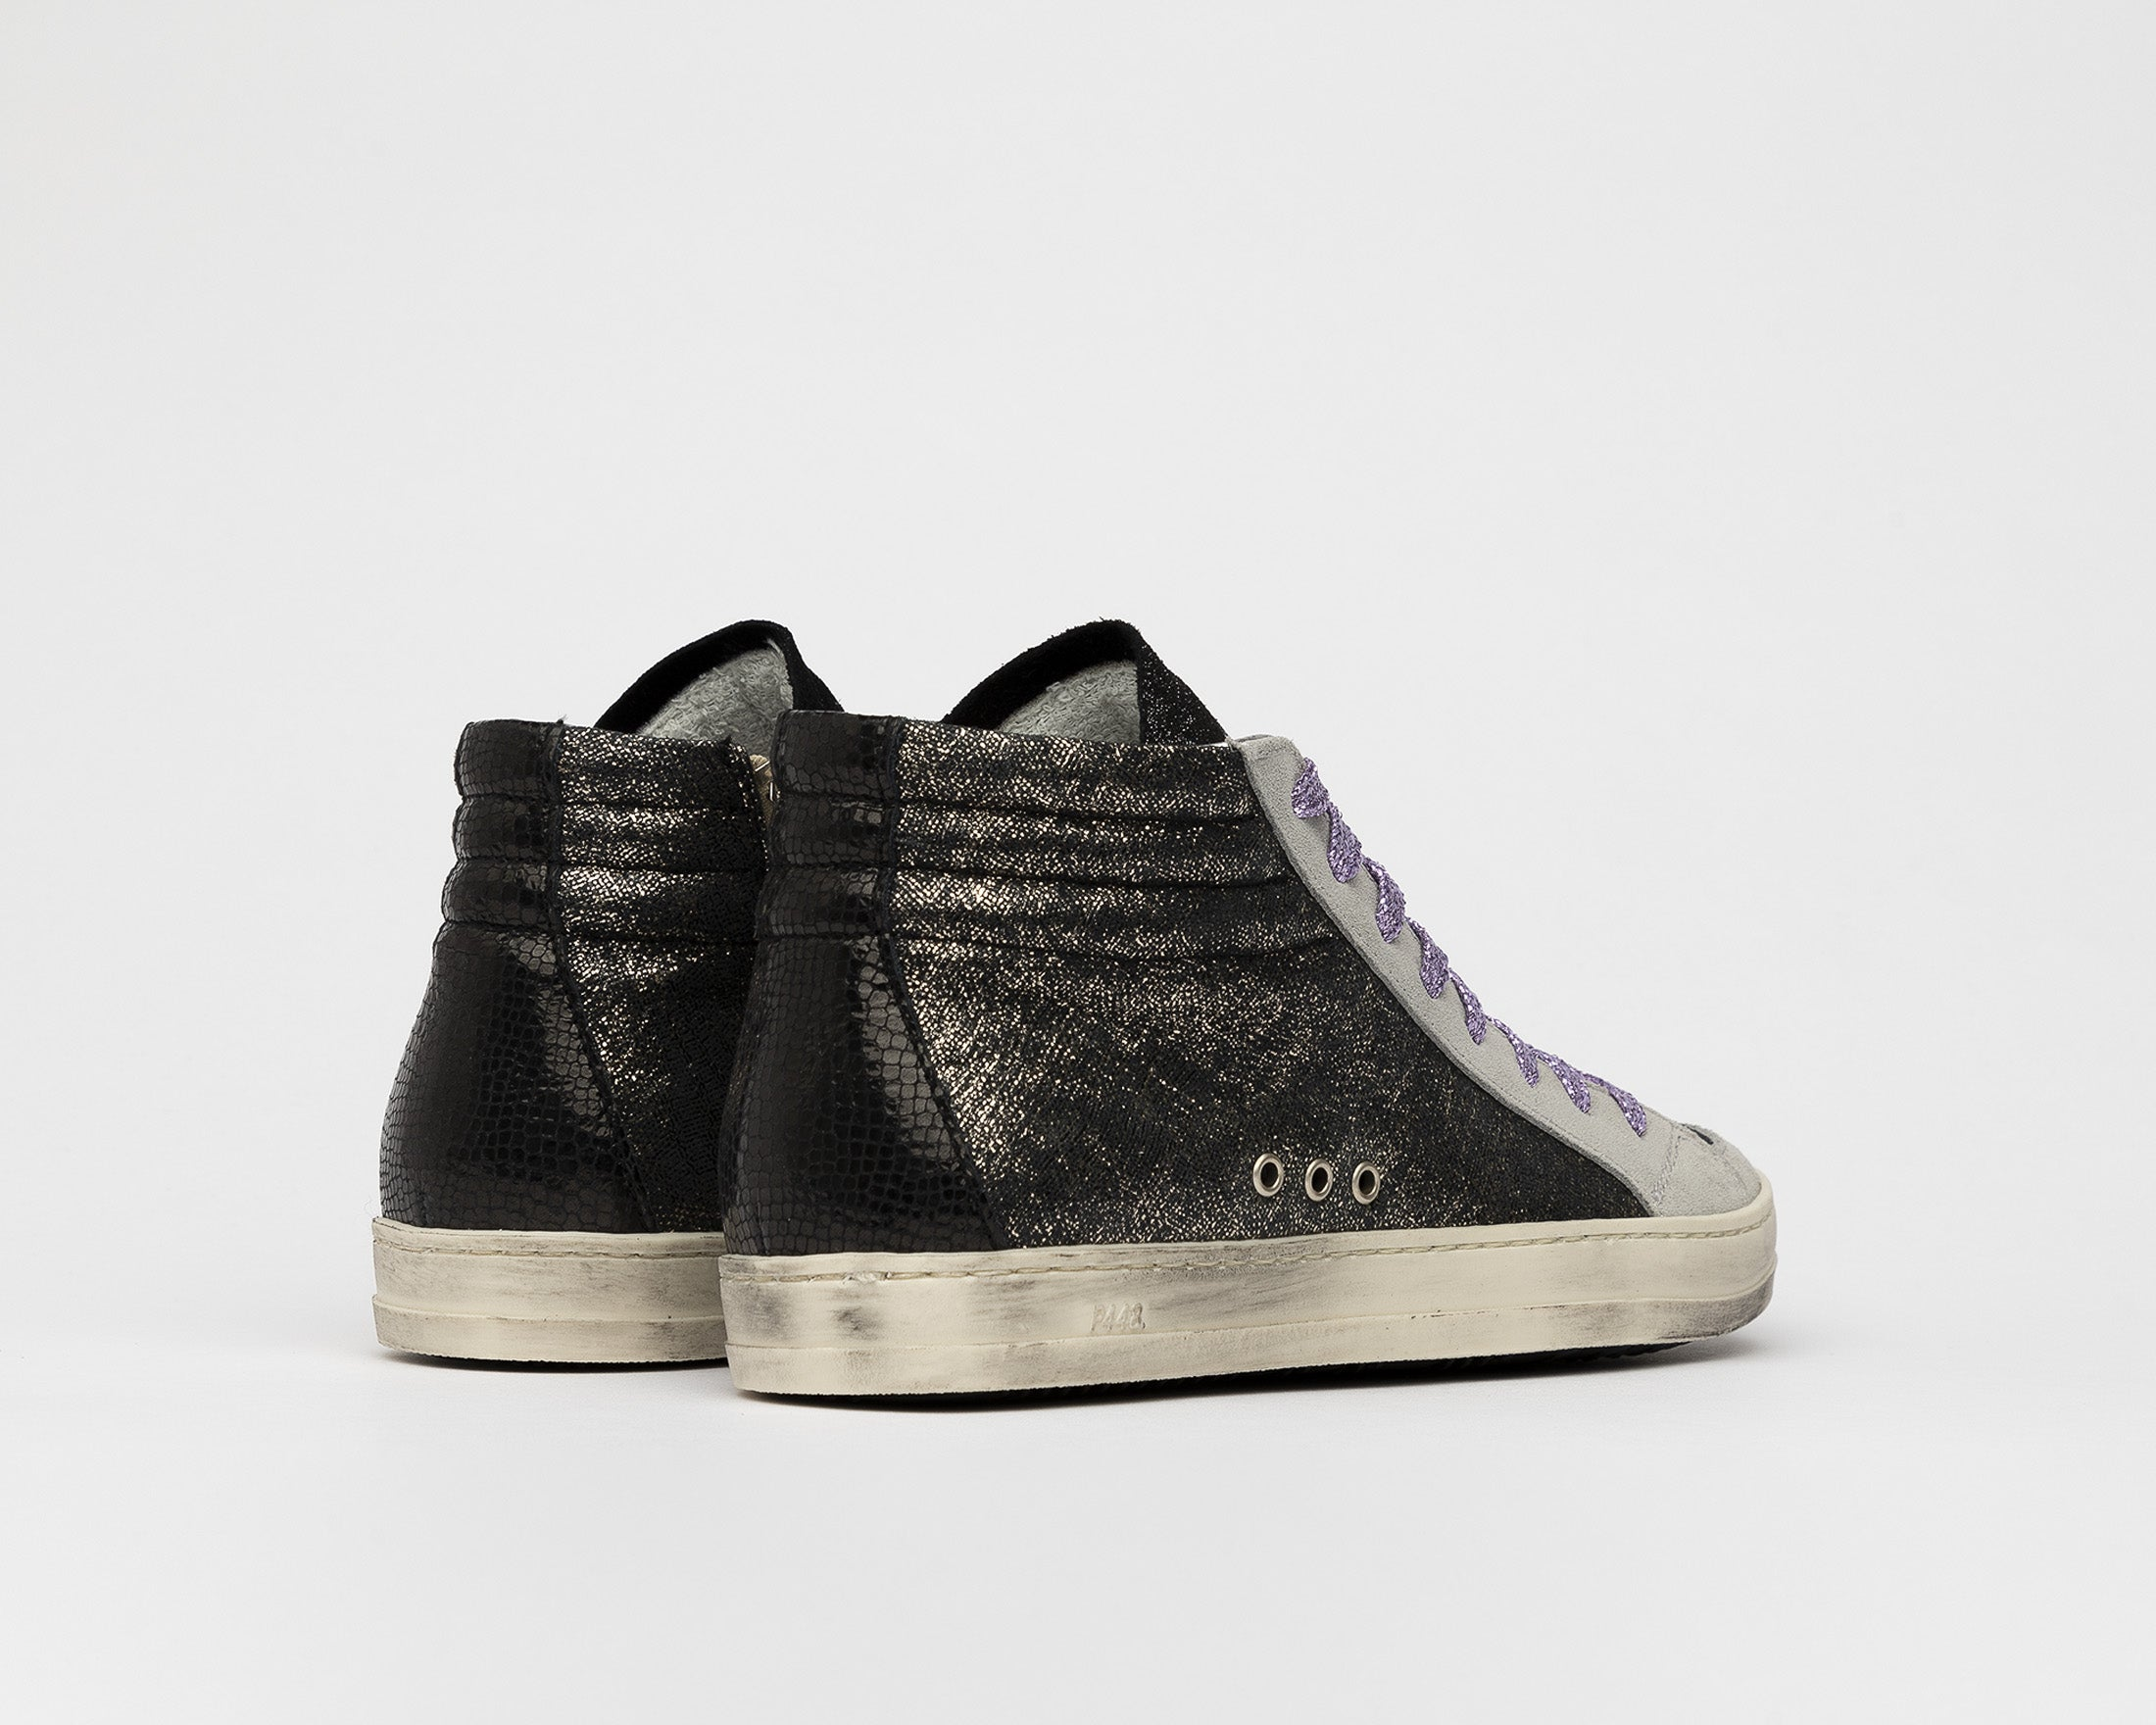 Skate High-Top Sneaker in Black/Loft - Back